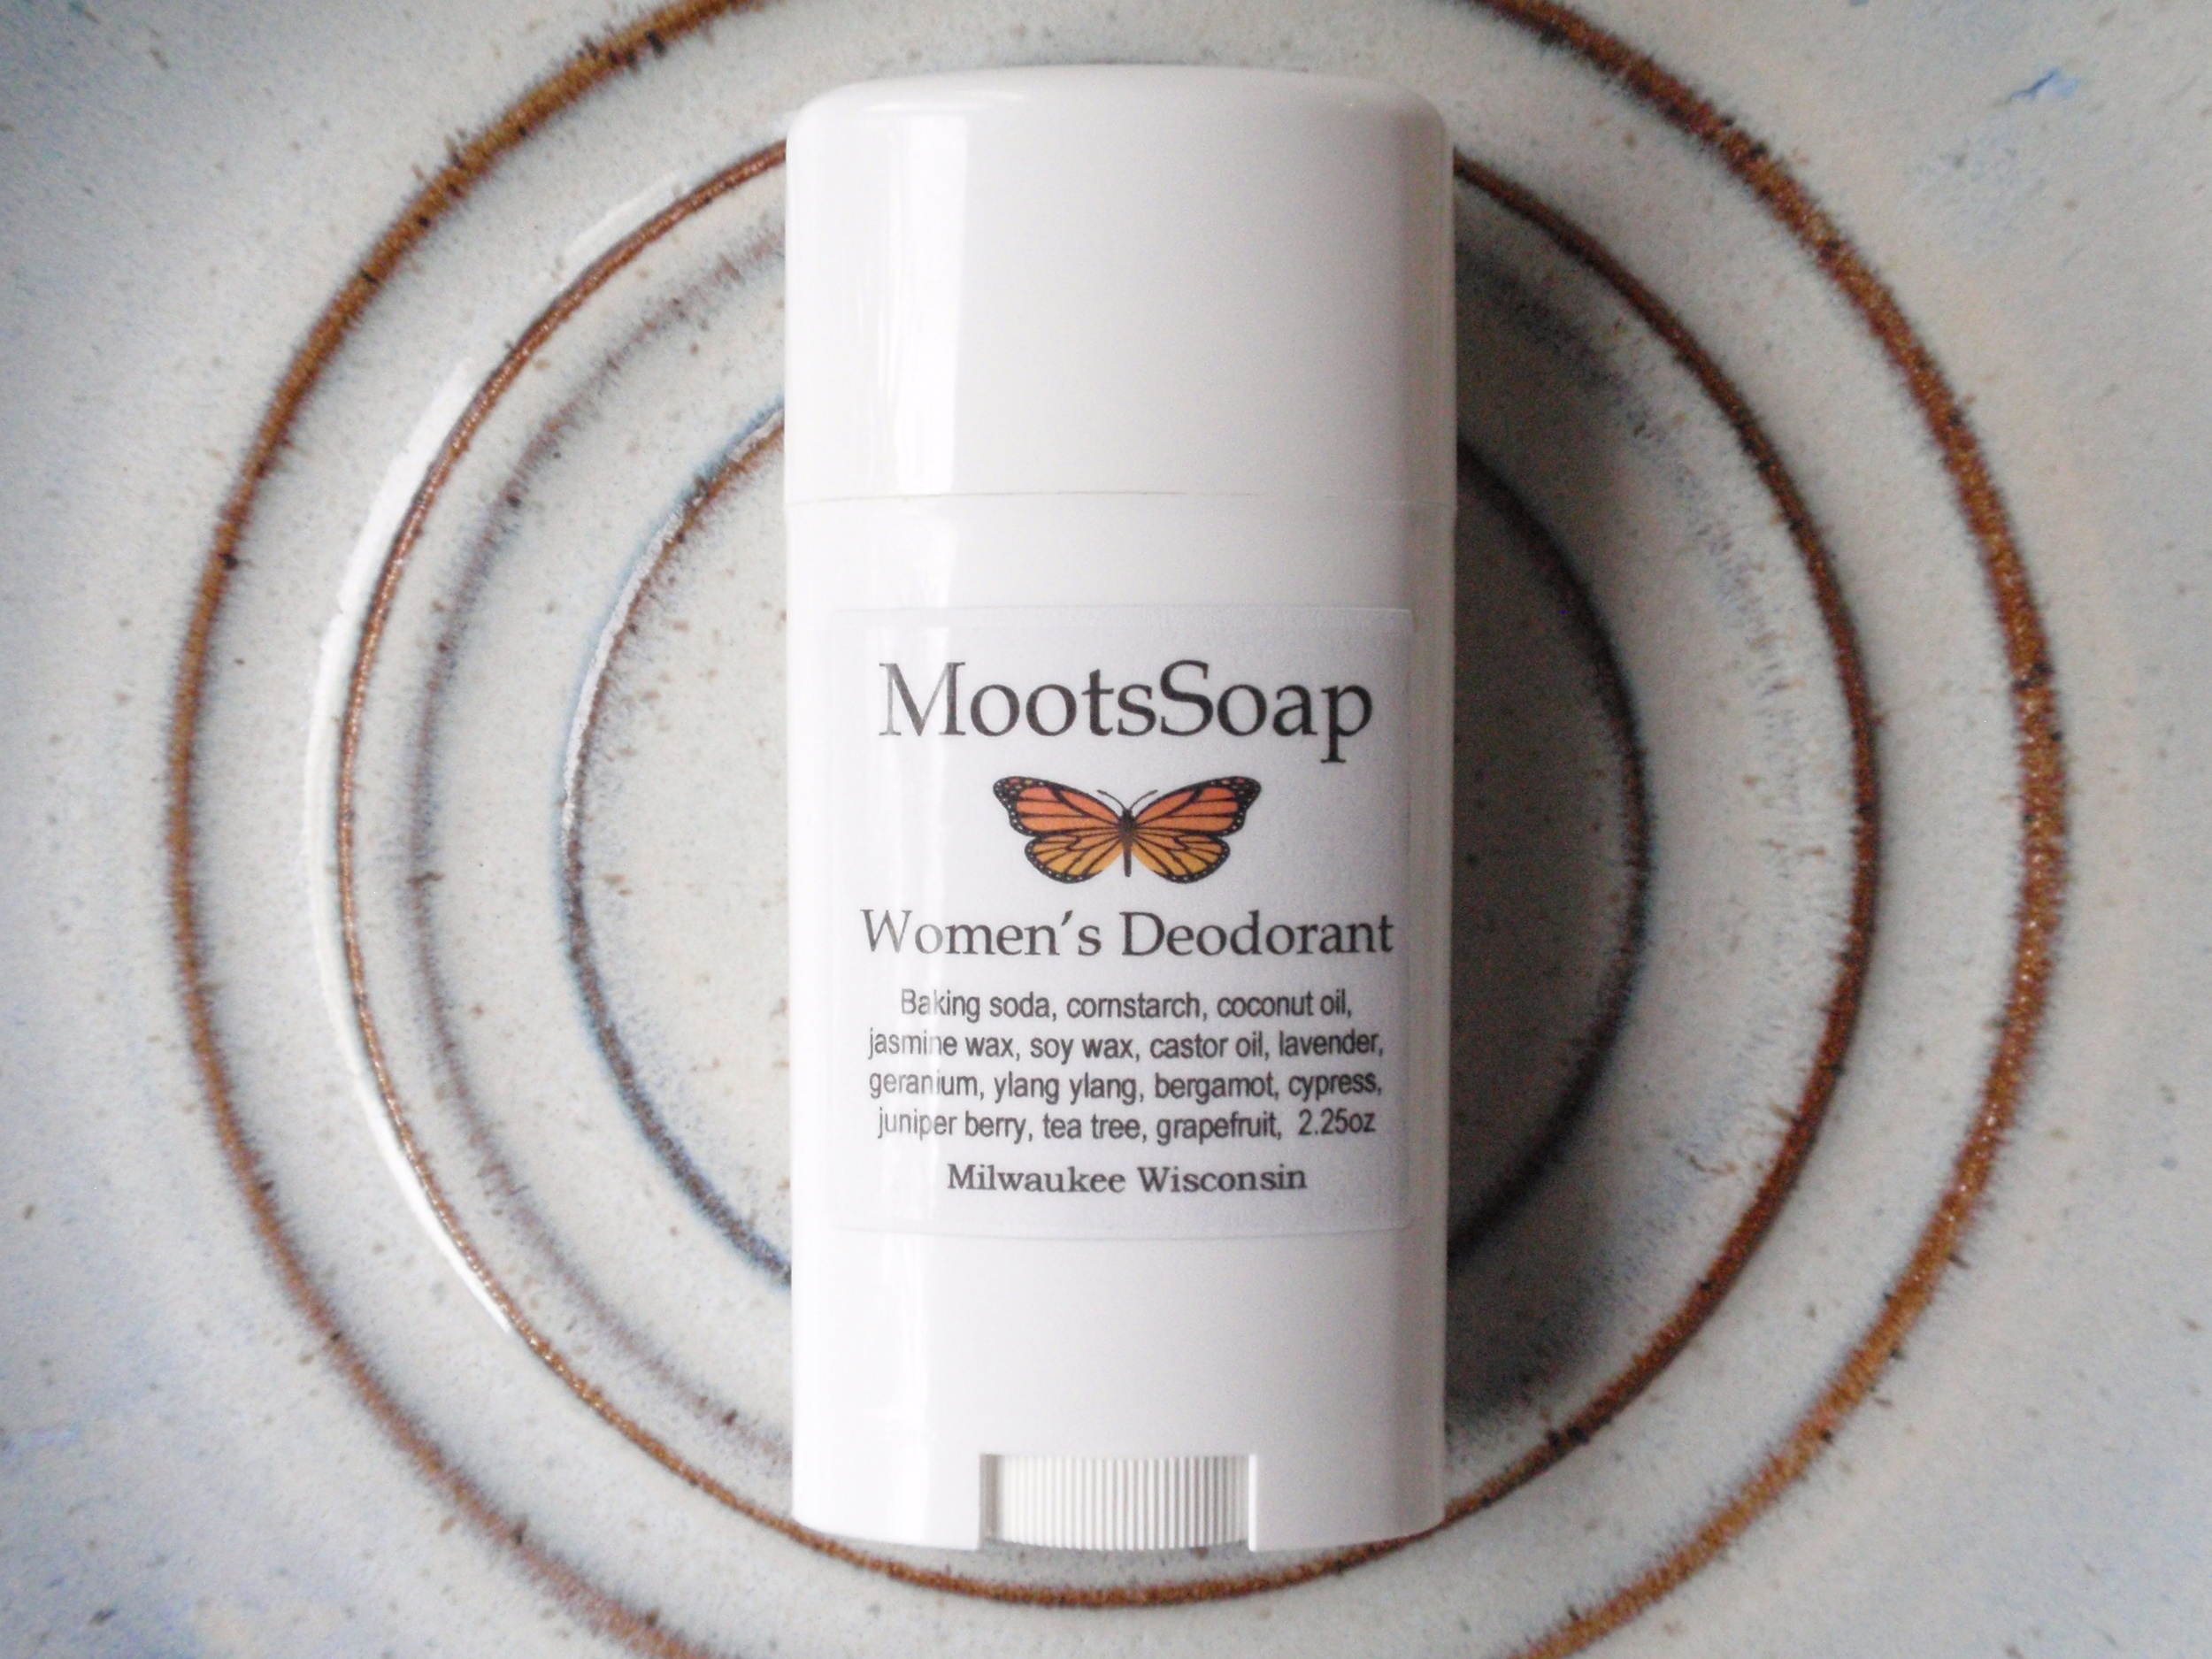 Our women's deodorant - A floral blend featuring jasmine and geranium.